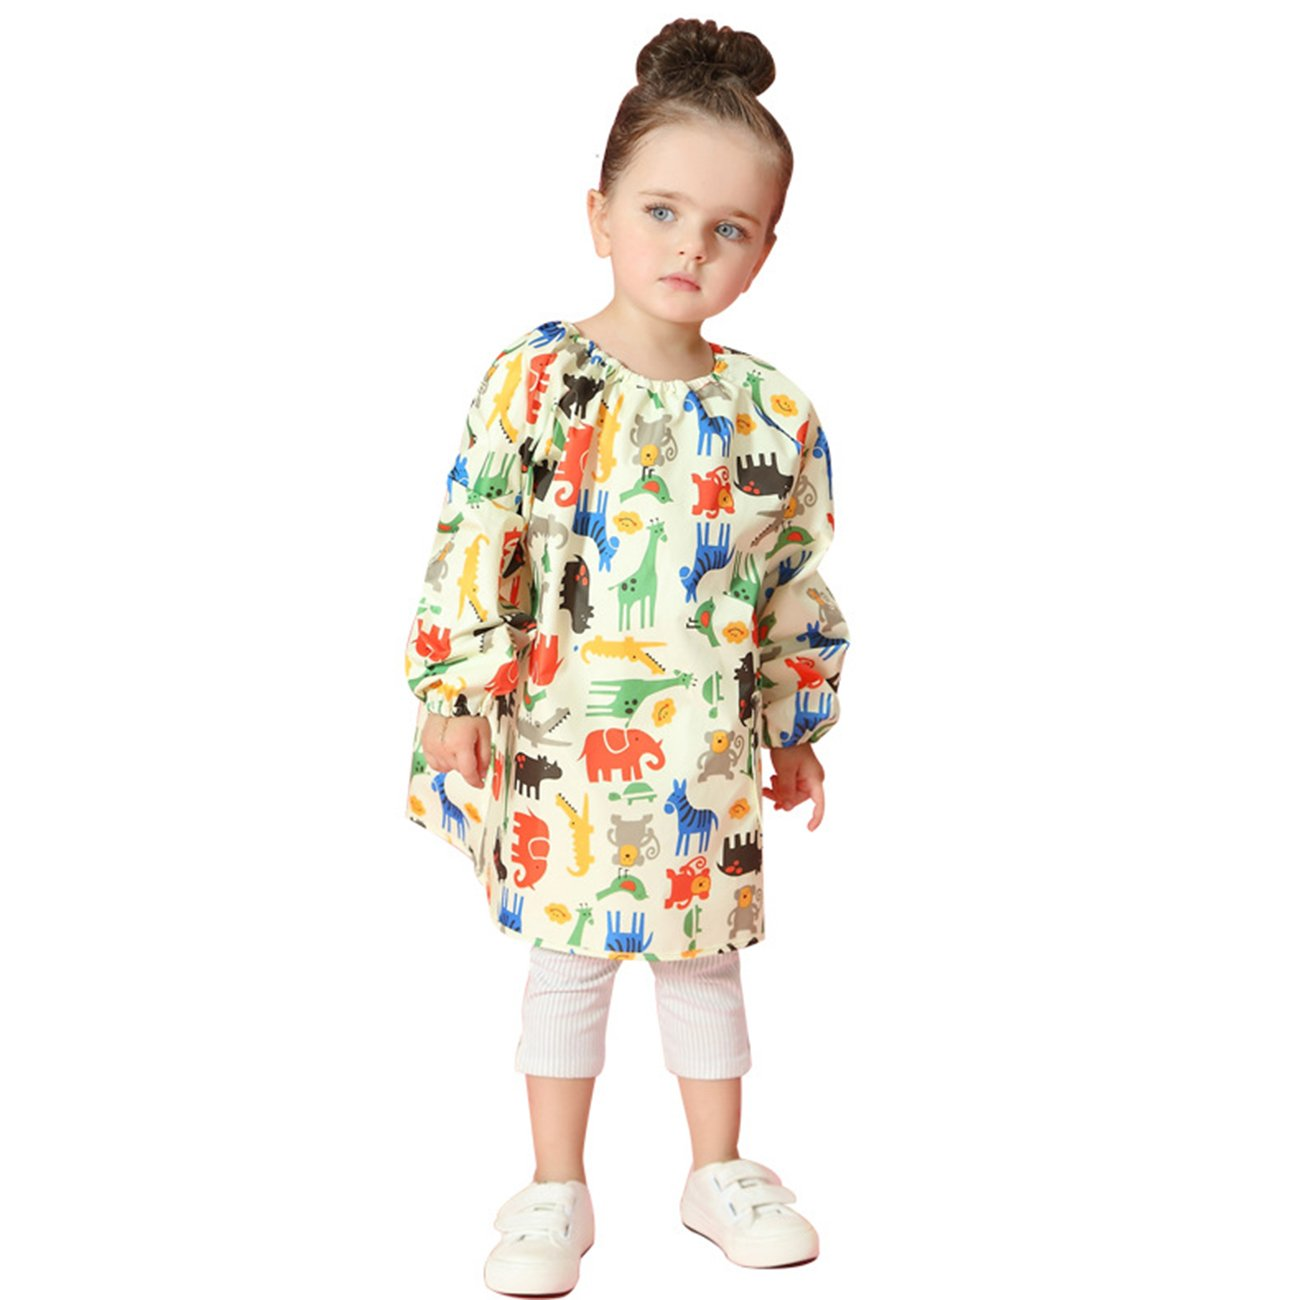 Lemonkid® Children Waterproof Painting Clothing Fashion Cartoon Kids Overclothes Dustcoat,Yellow,M/Height:95-105cm/fit 3-5T